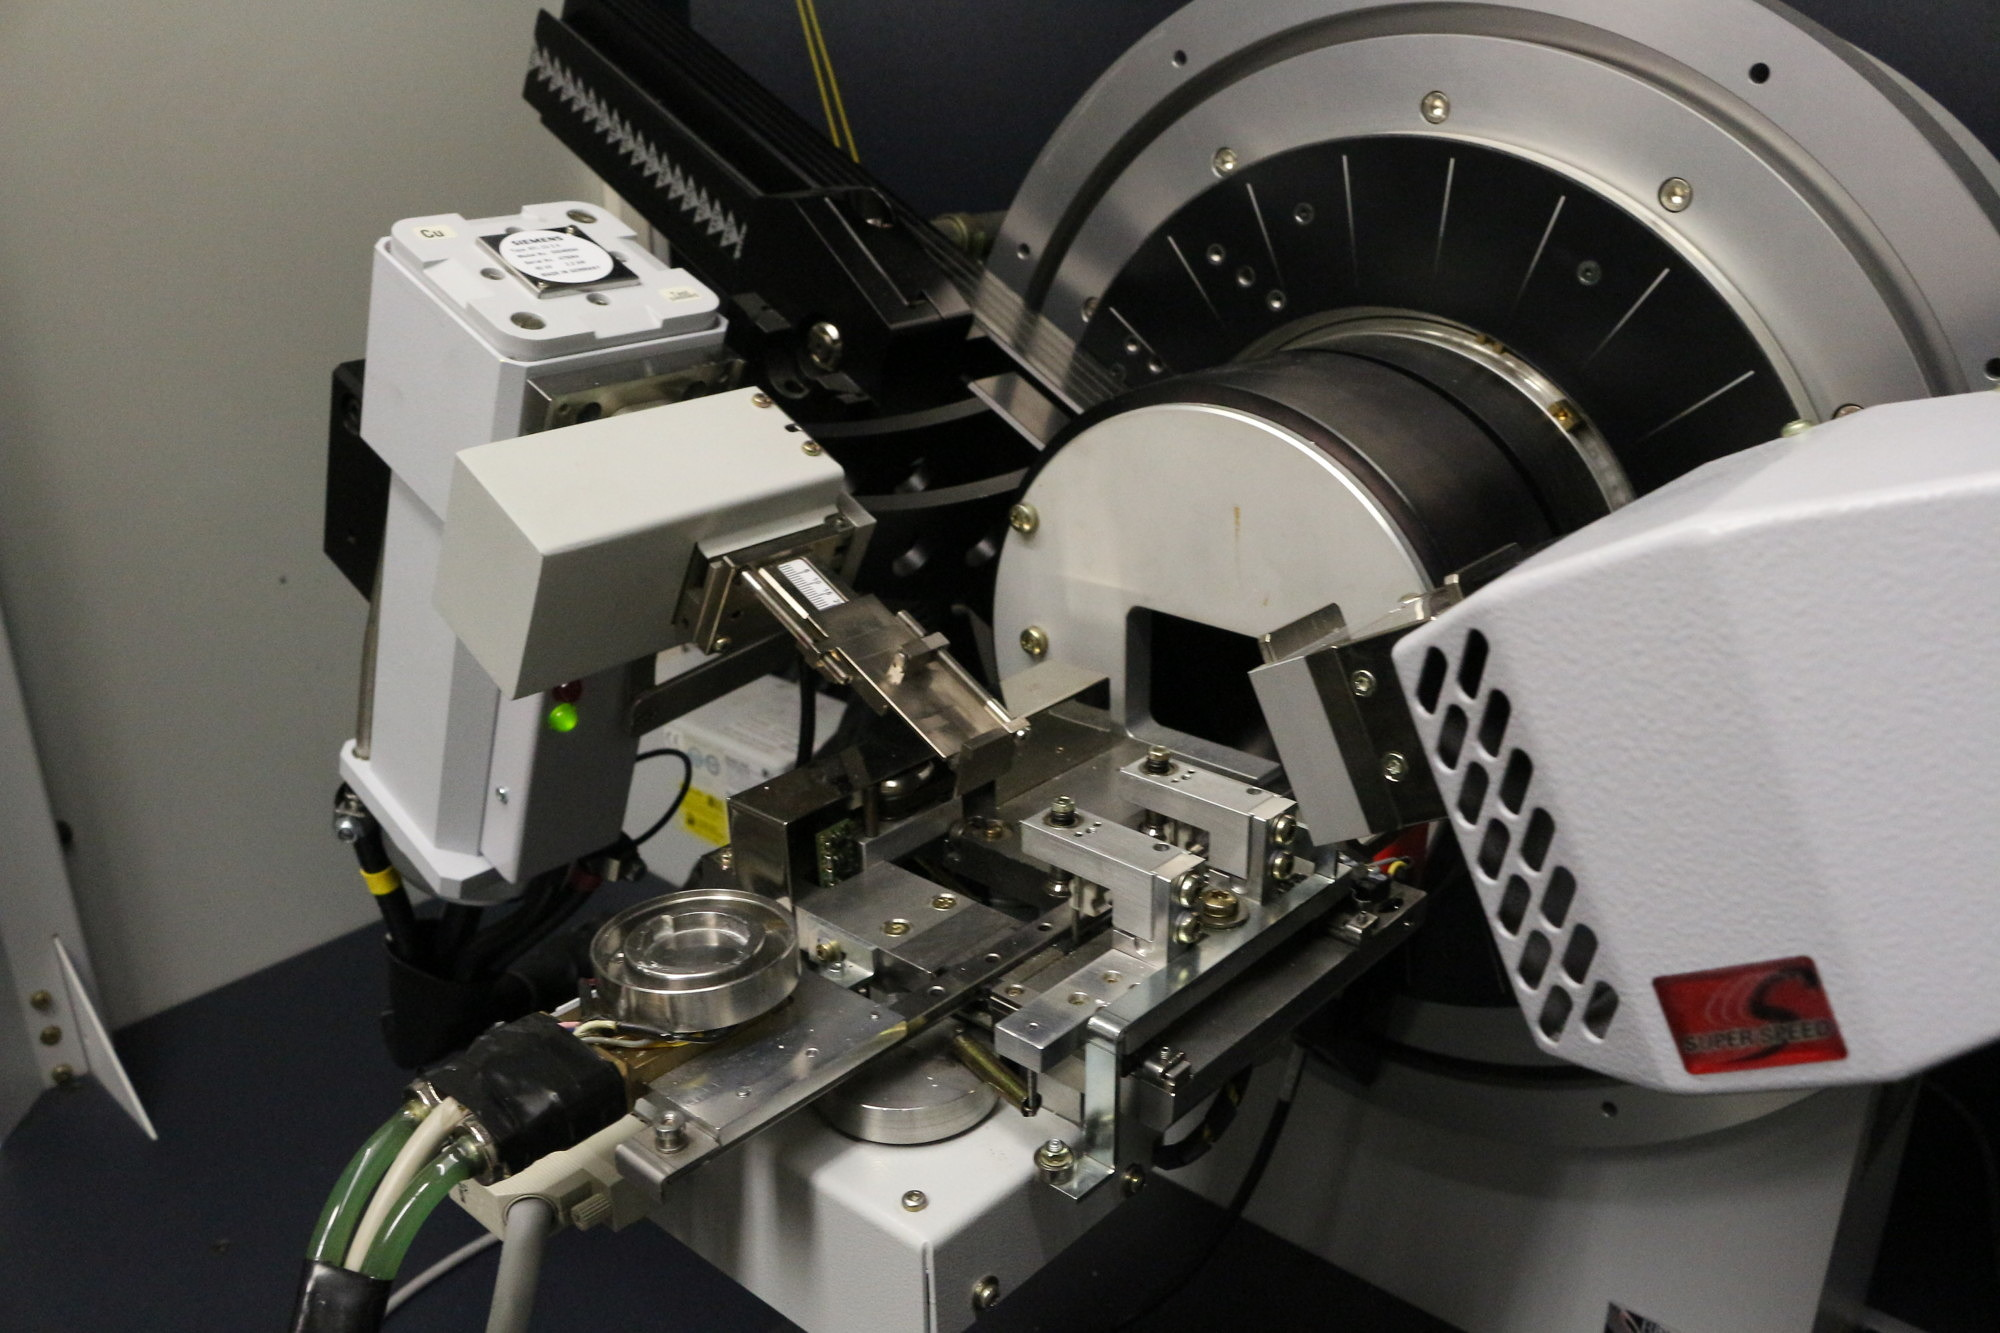 Bruker D8 with temperature-controlled reaction chamber equipped with LYNXEYE detector